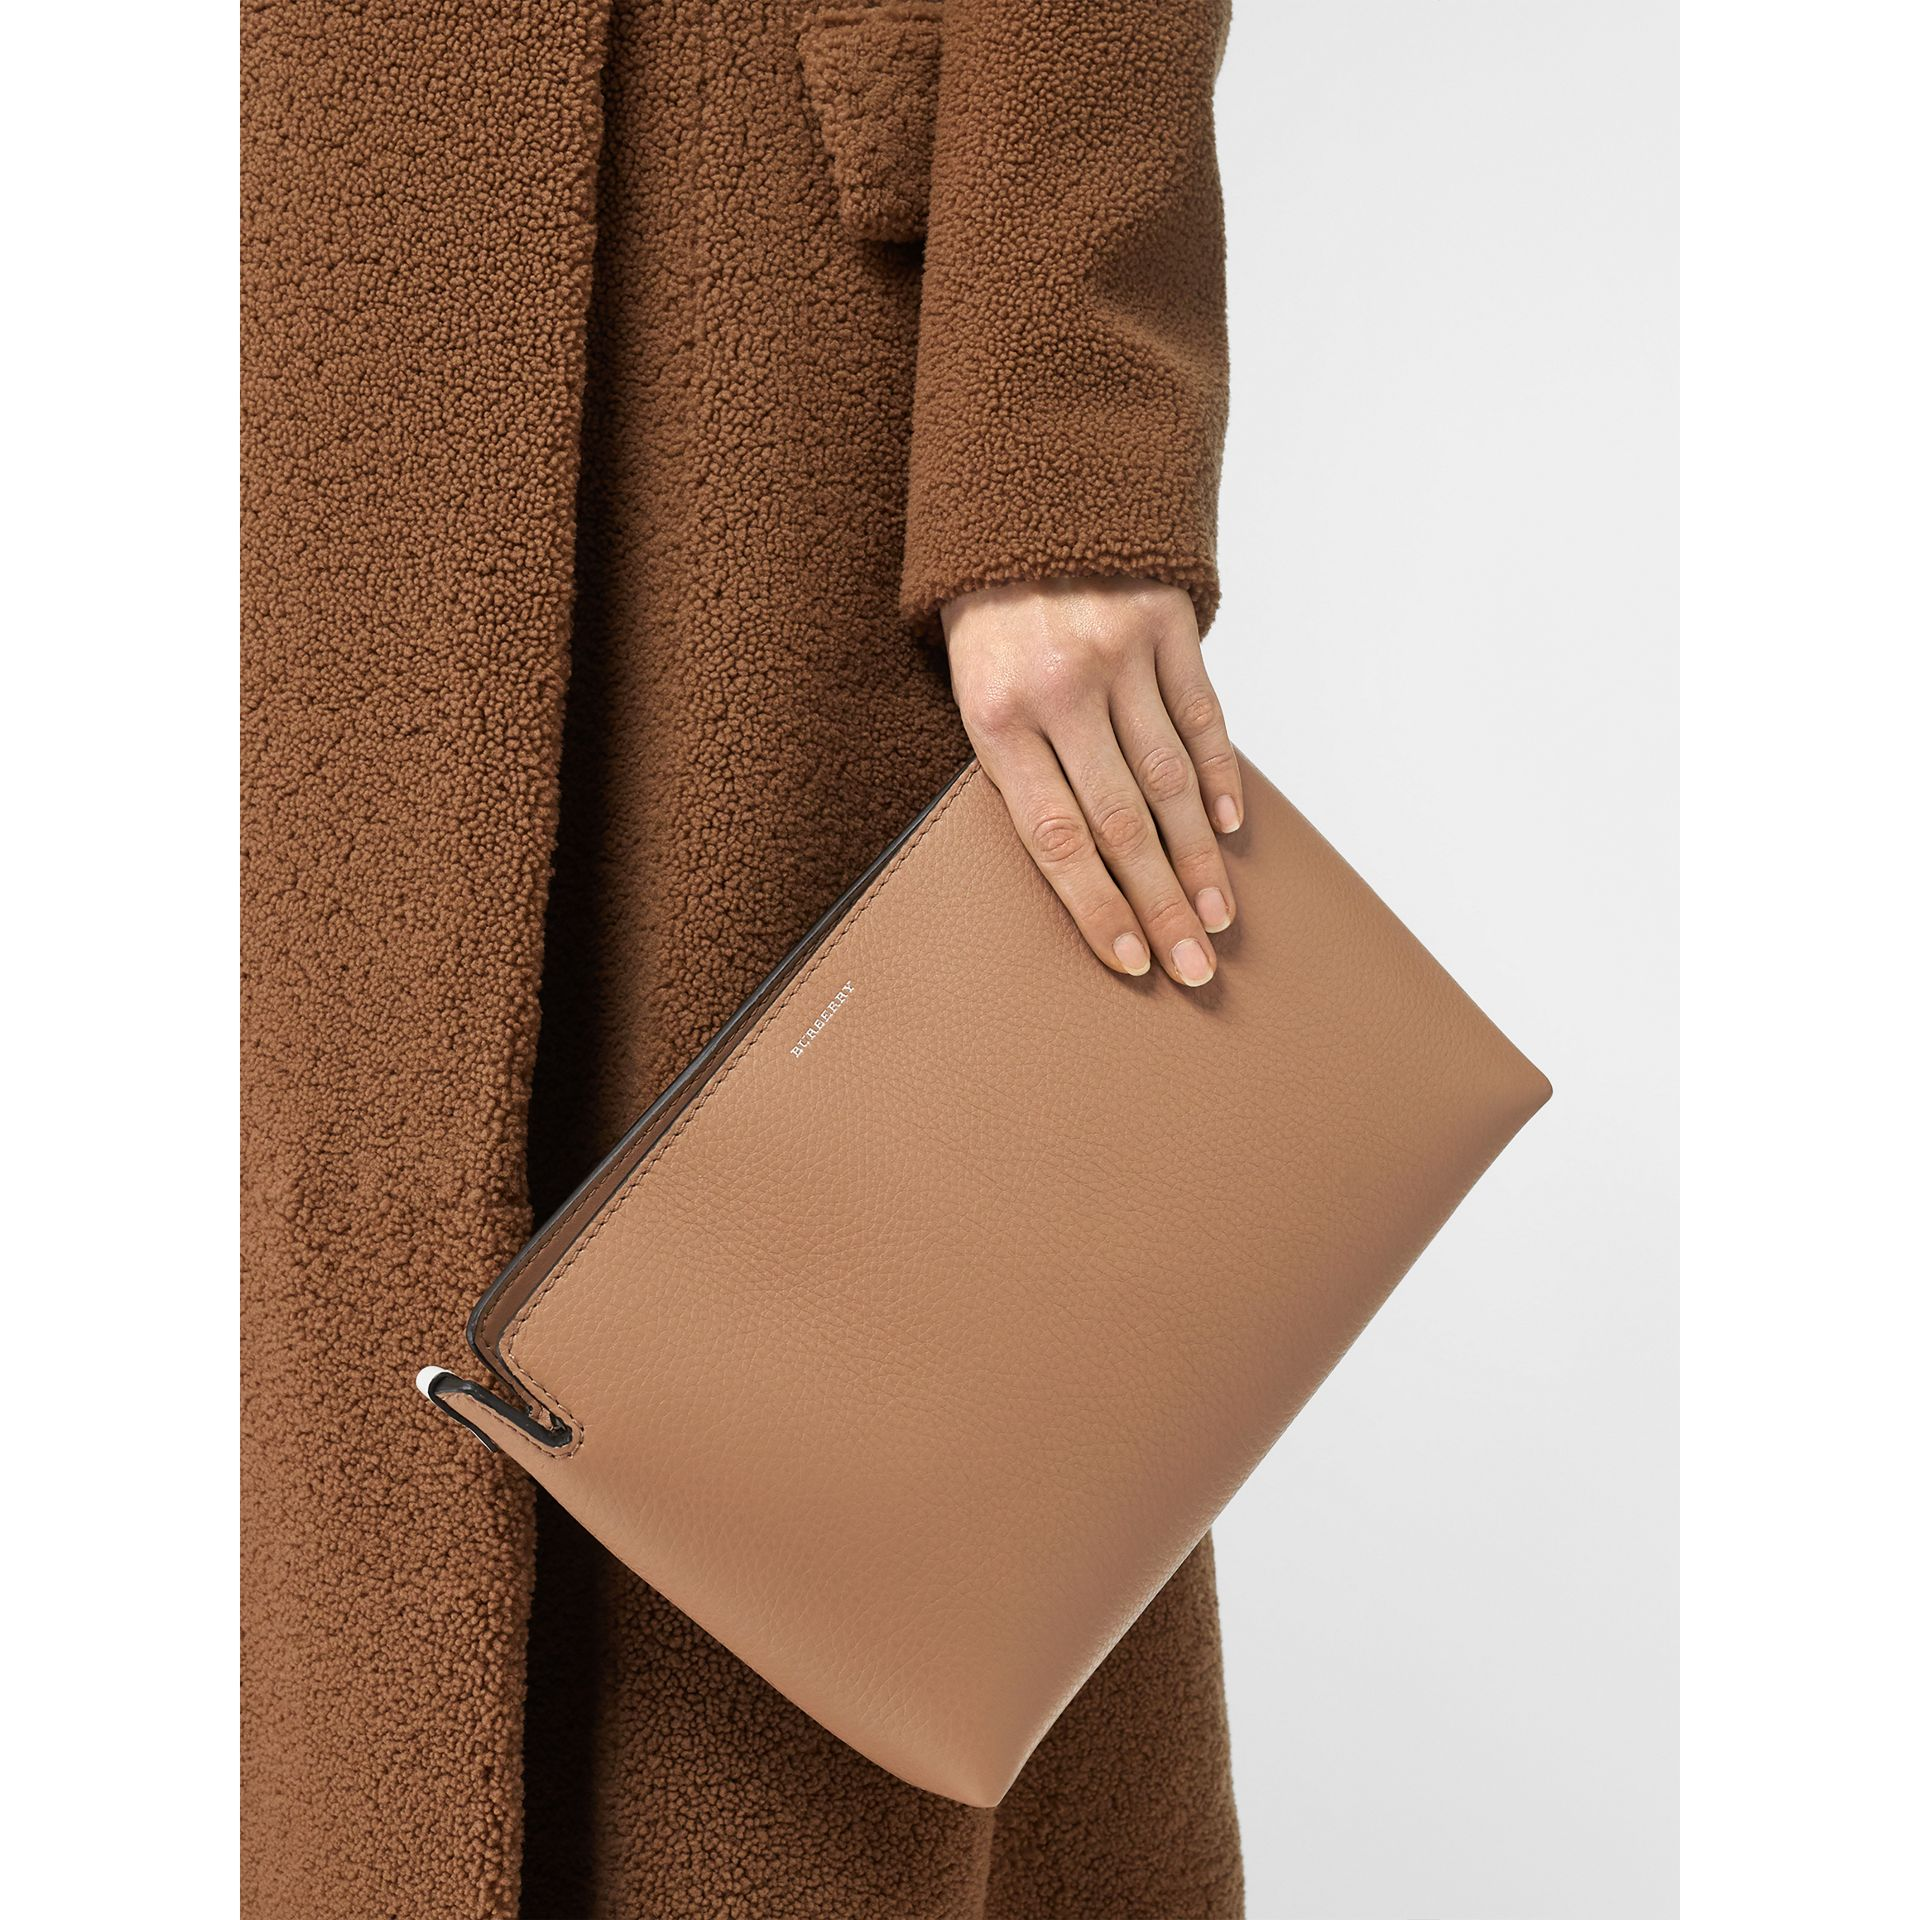 Medium Two-tone Leather Clutch in Light Camel/chalk White - Women | Burberry United States - gallery image 2